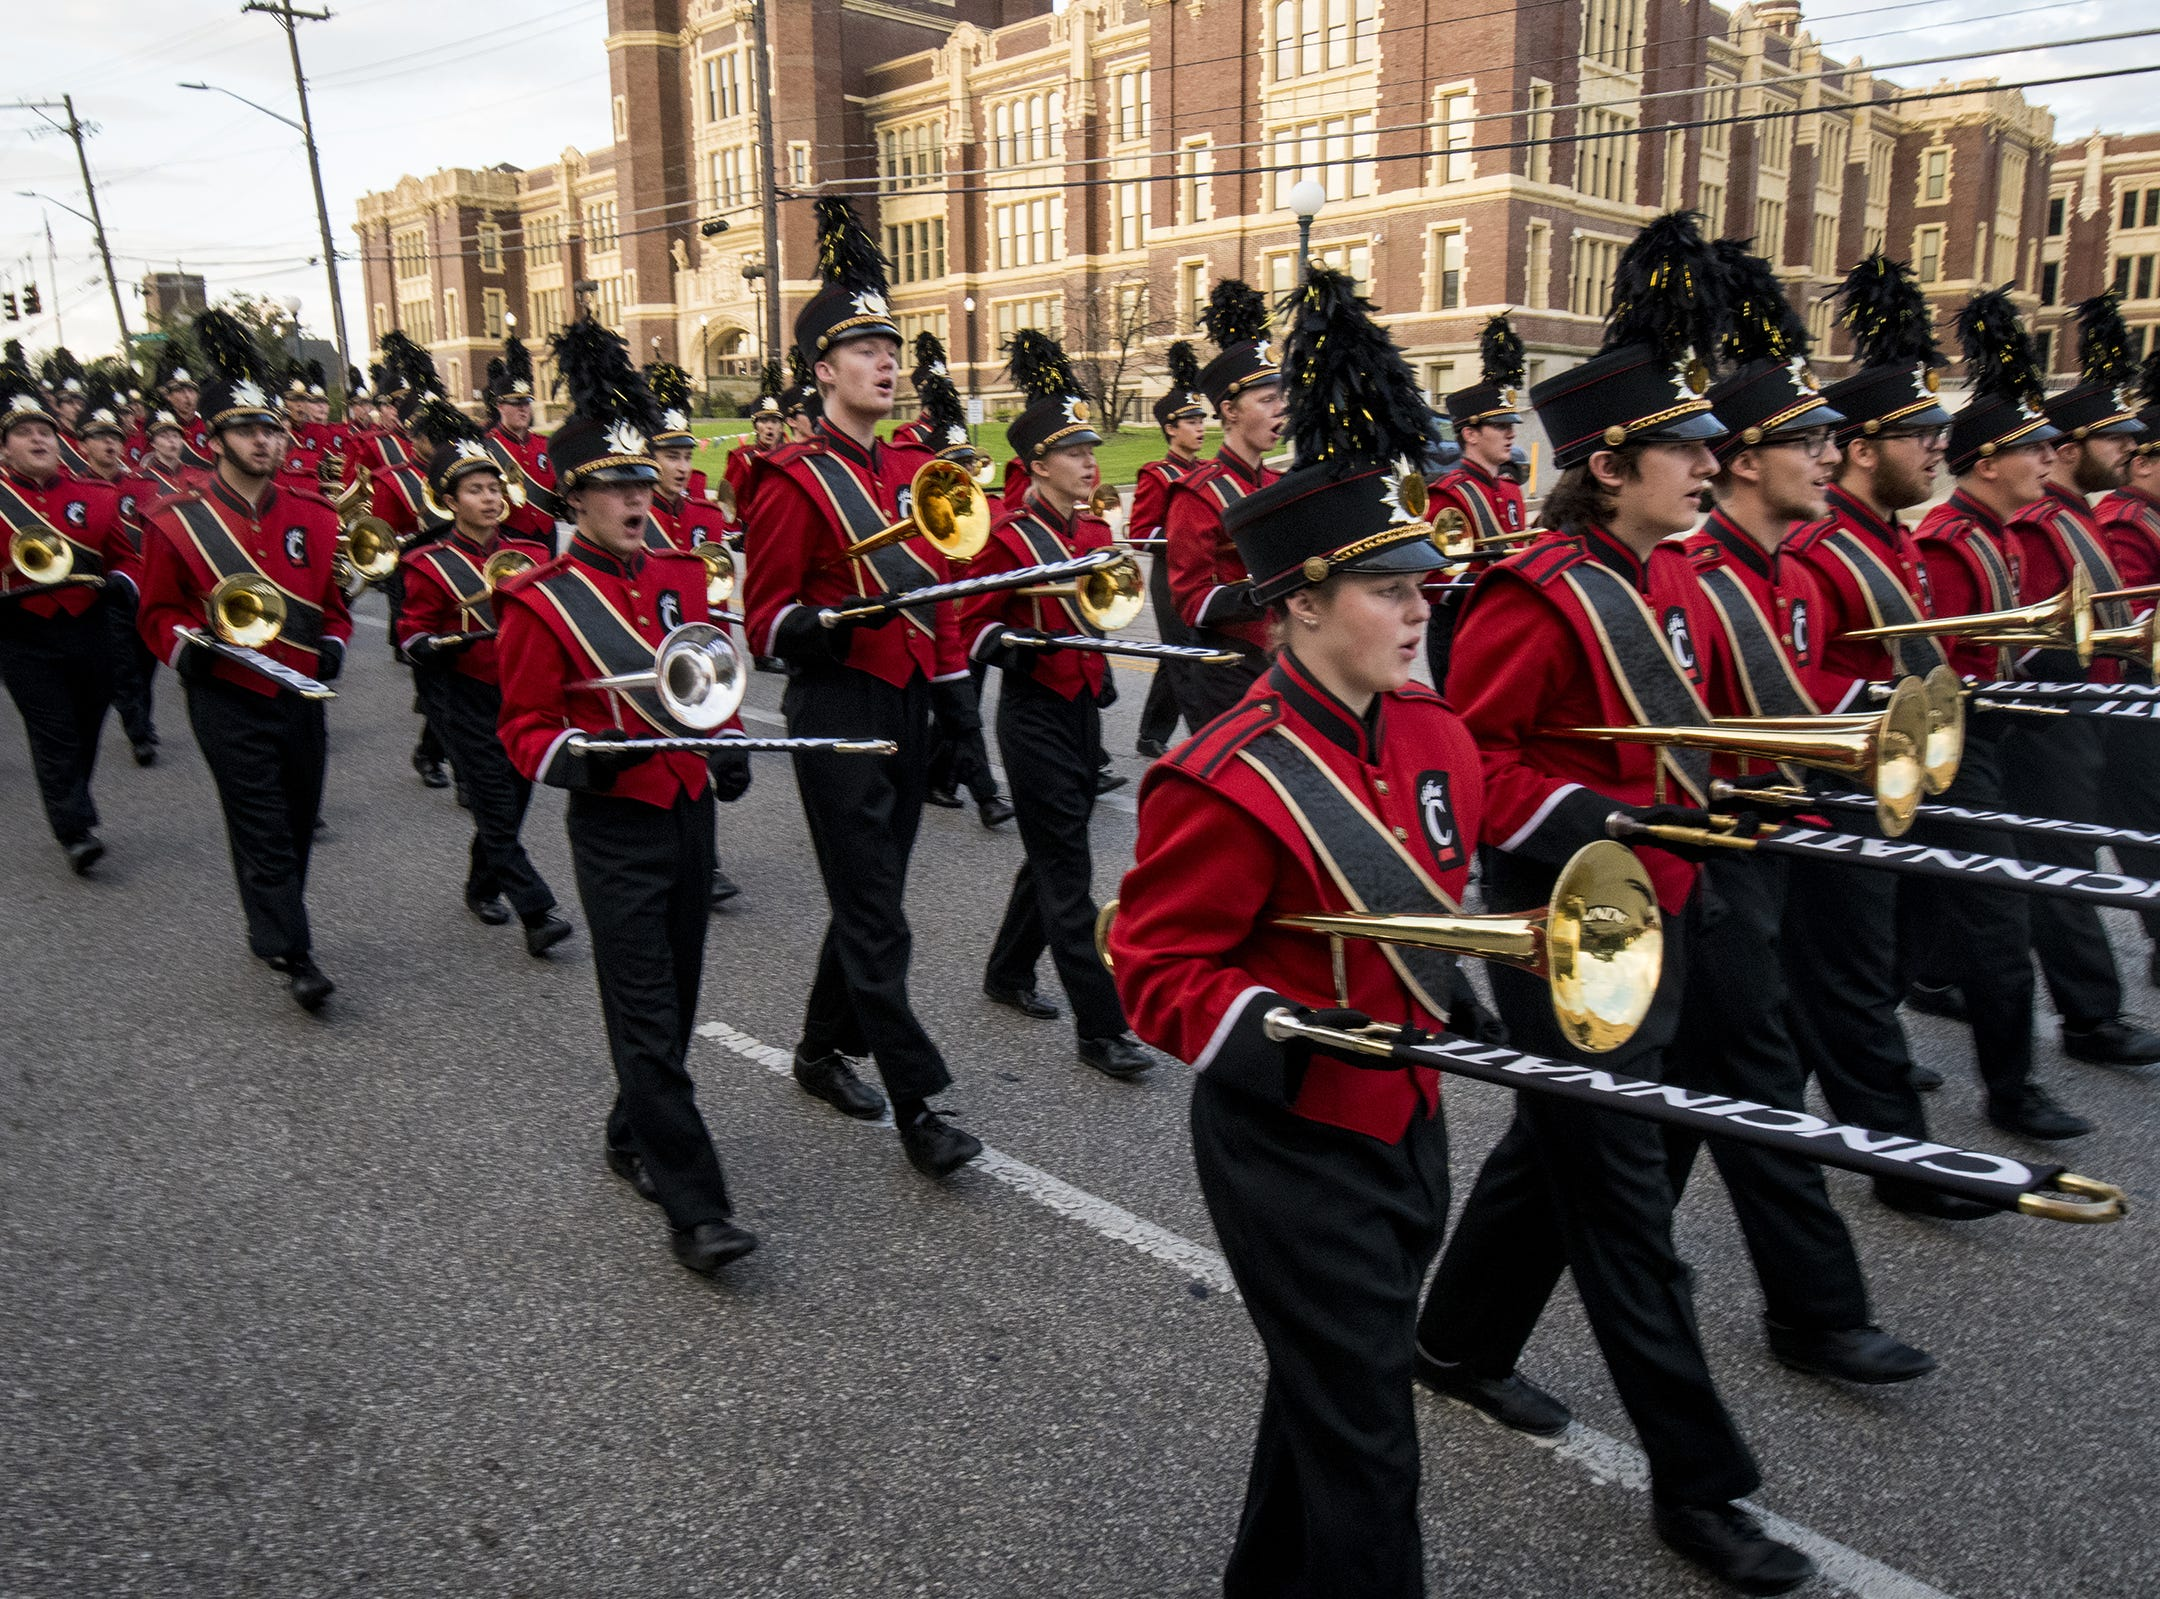 The University of Cincinnati marching band leads the annual Homecoming parade Saturday.